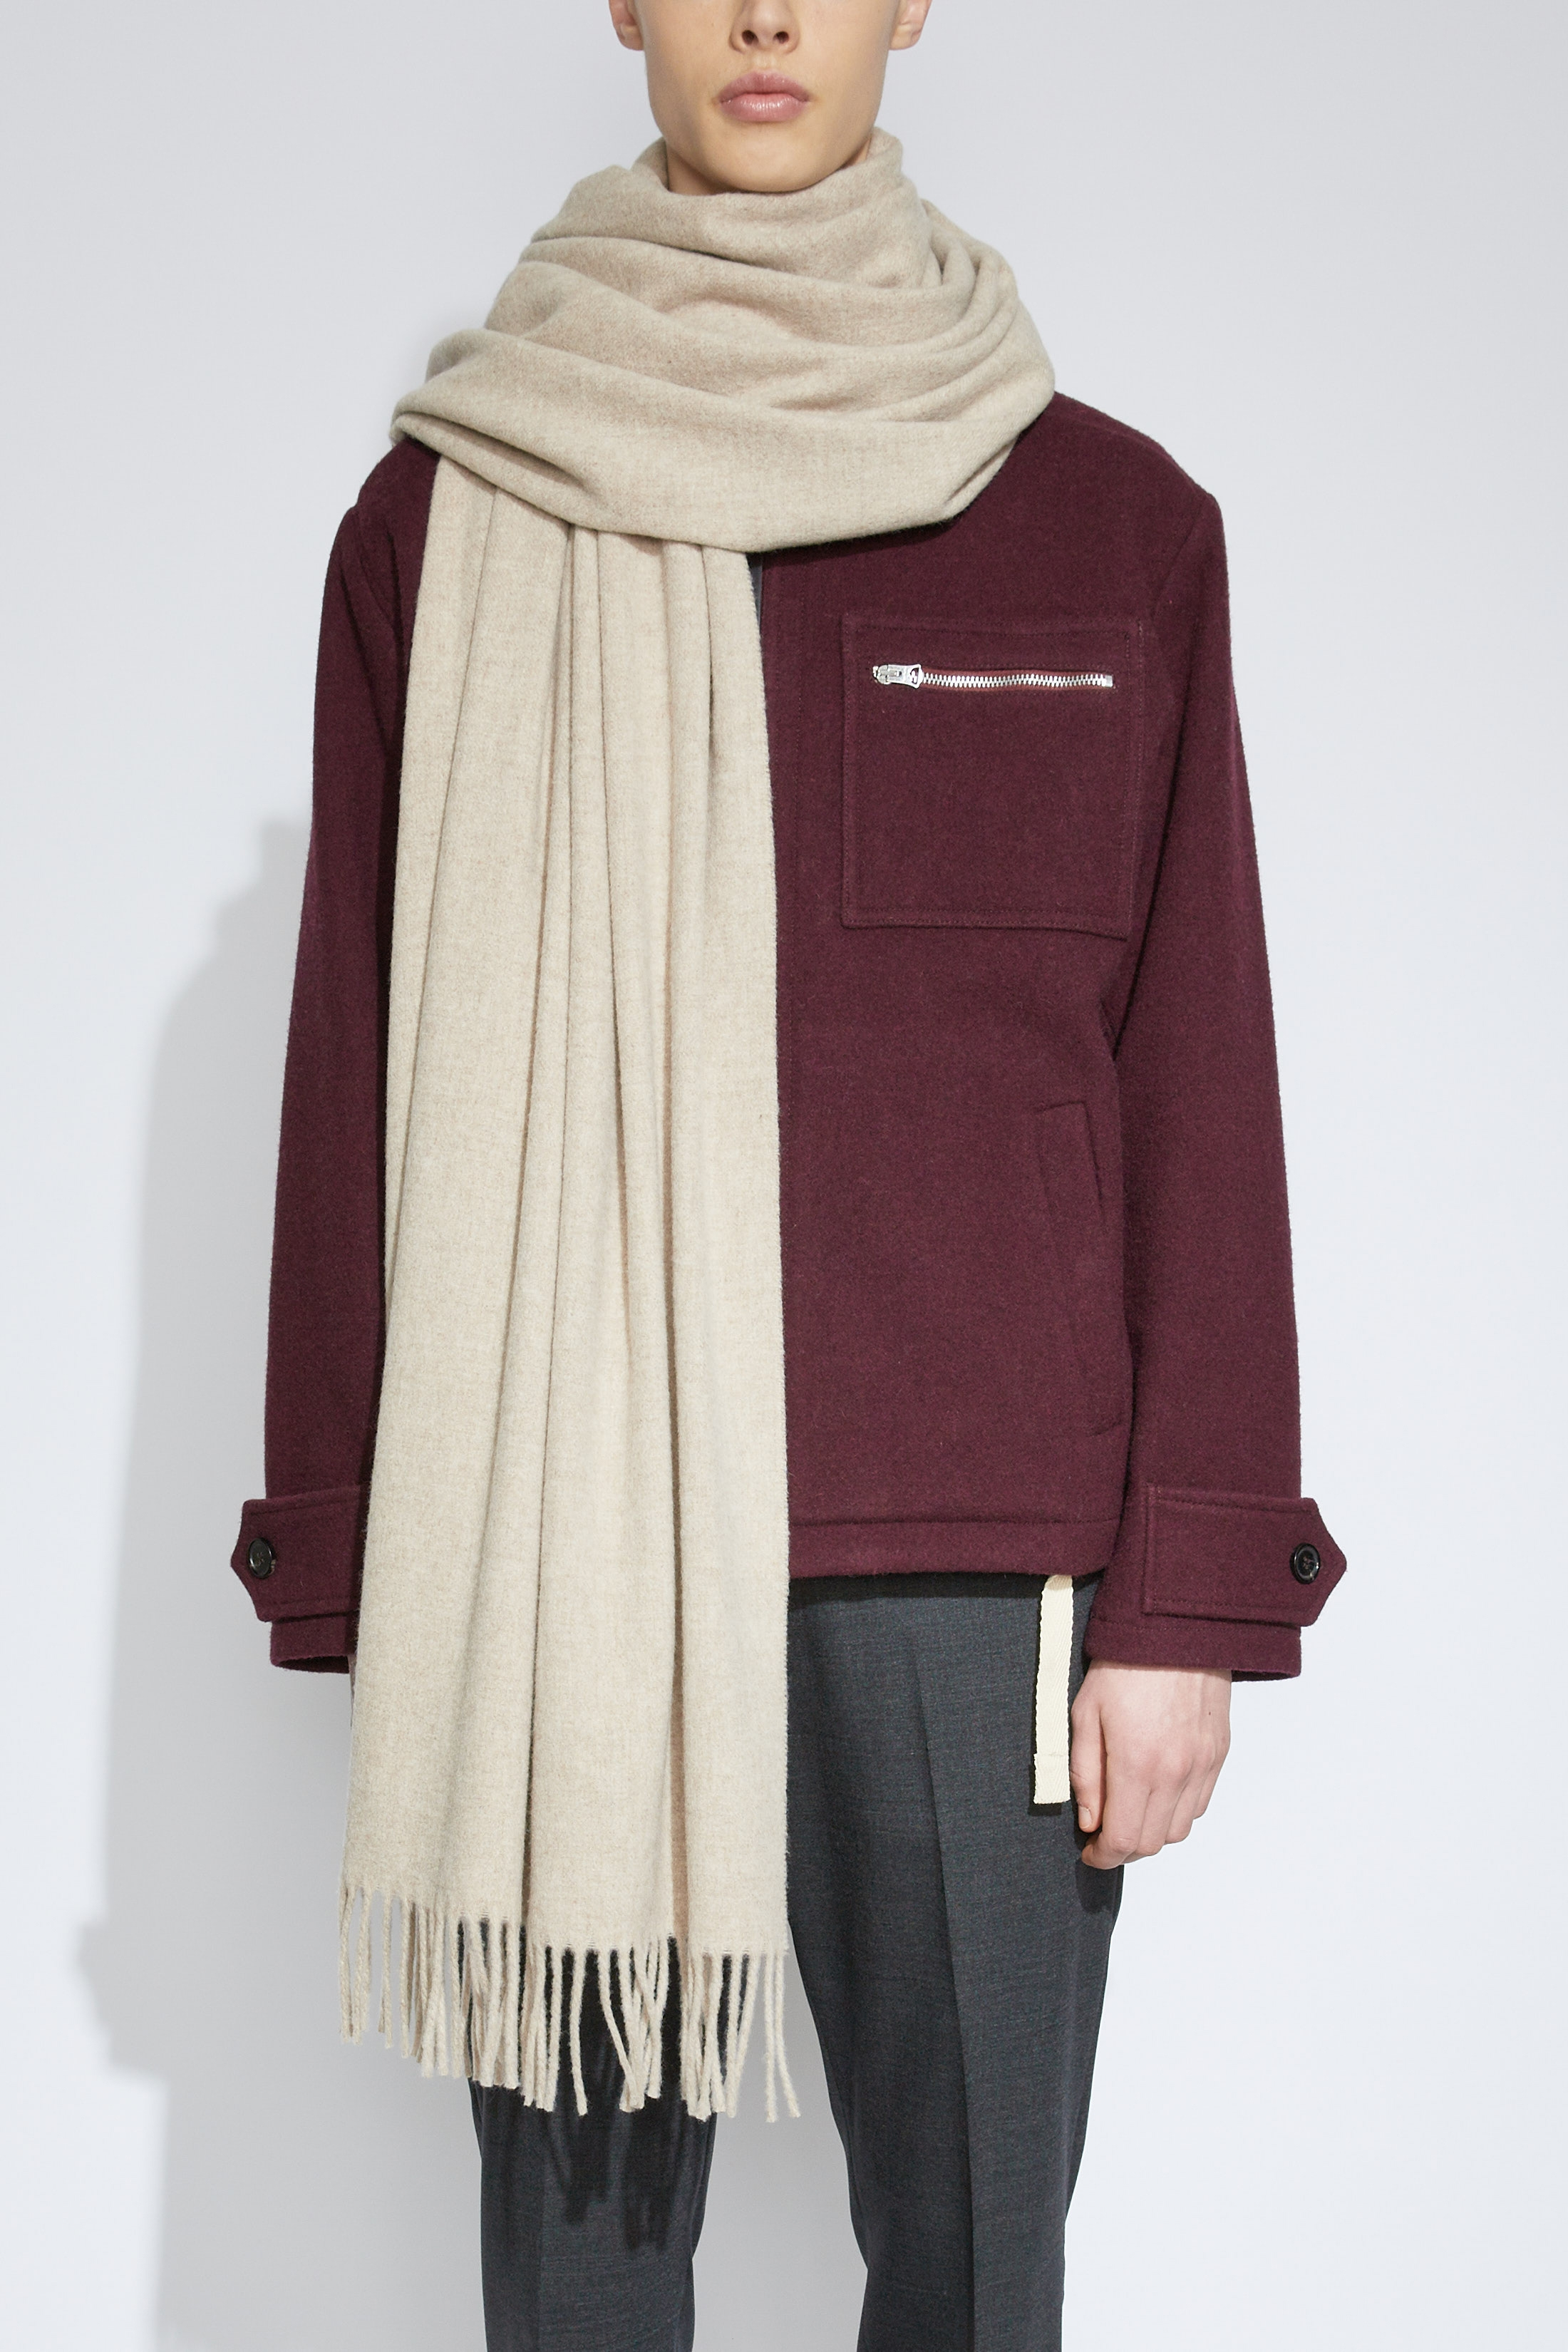 Image of   Acne Studios Canada Scarf, Oatmeal Beige